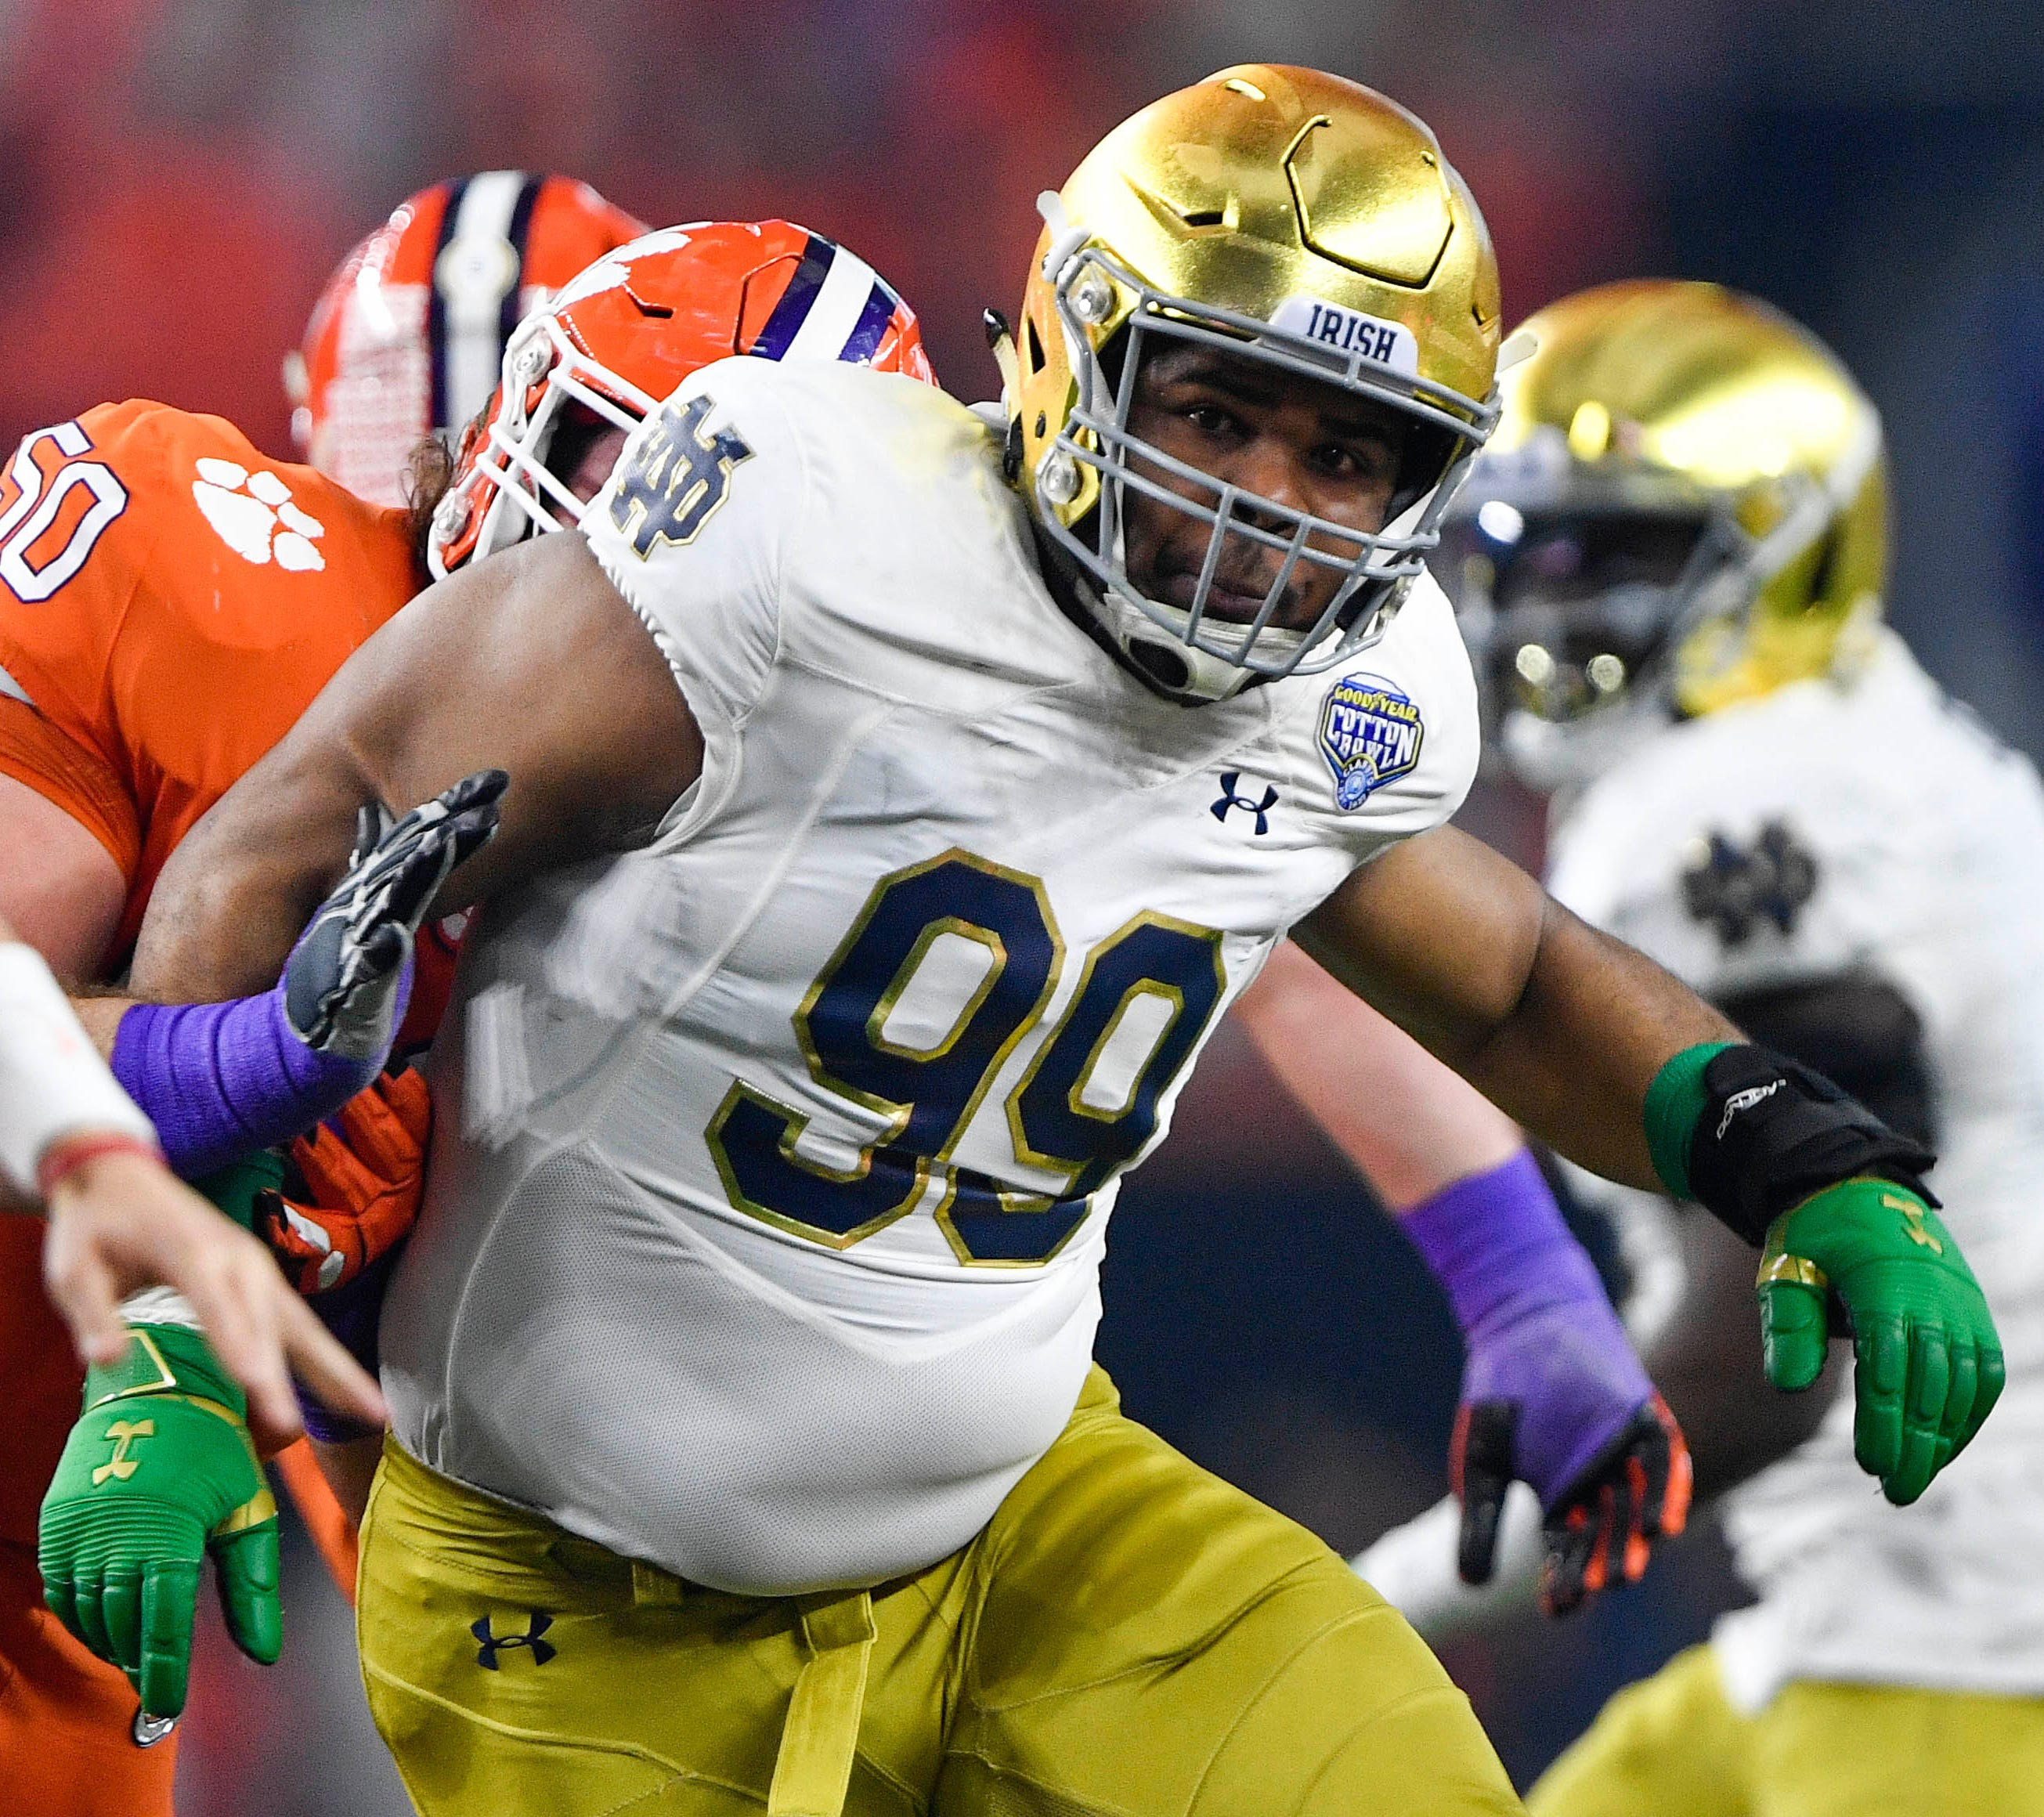 Jerry Tillery was a standout at Evangel Christian Academy before a stellar career at Notre Dame.